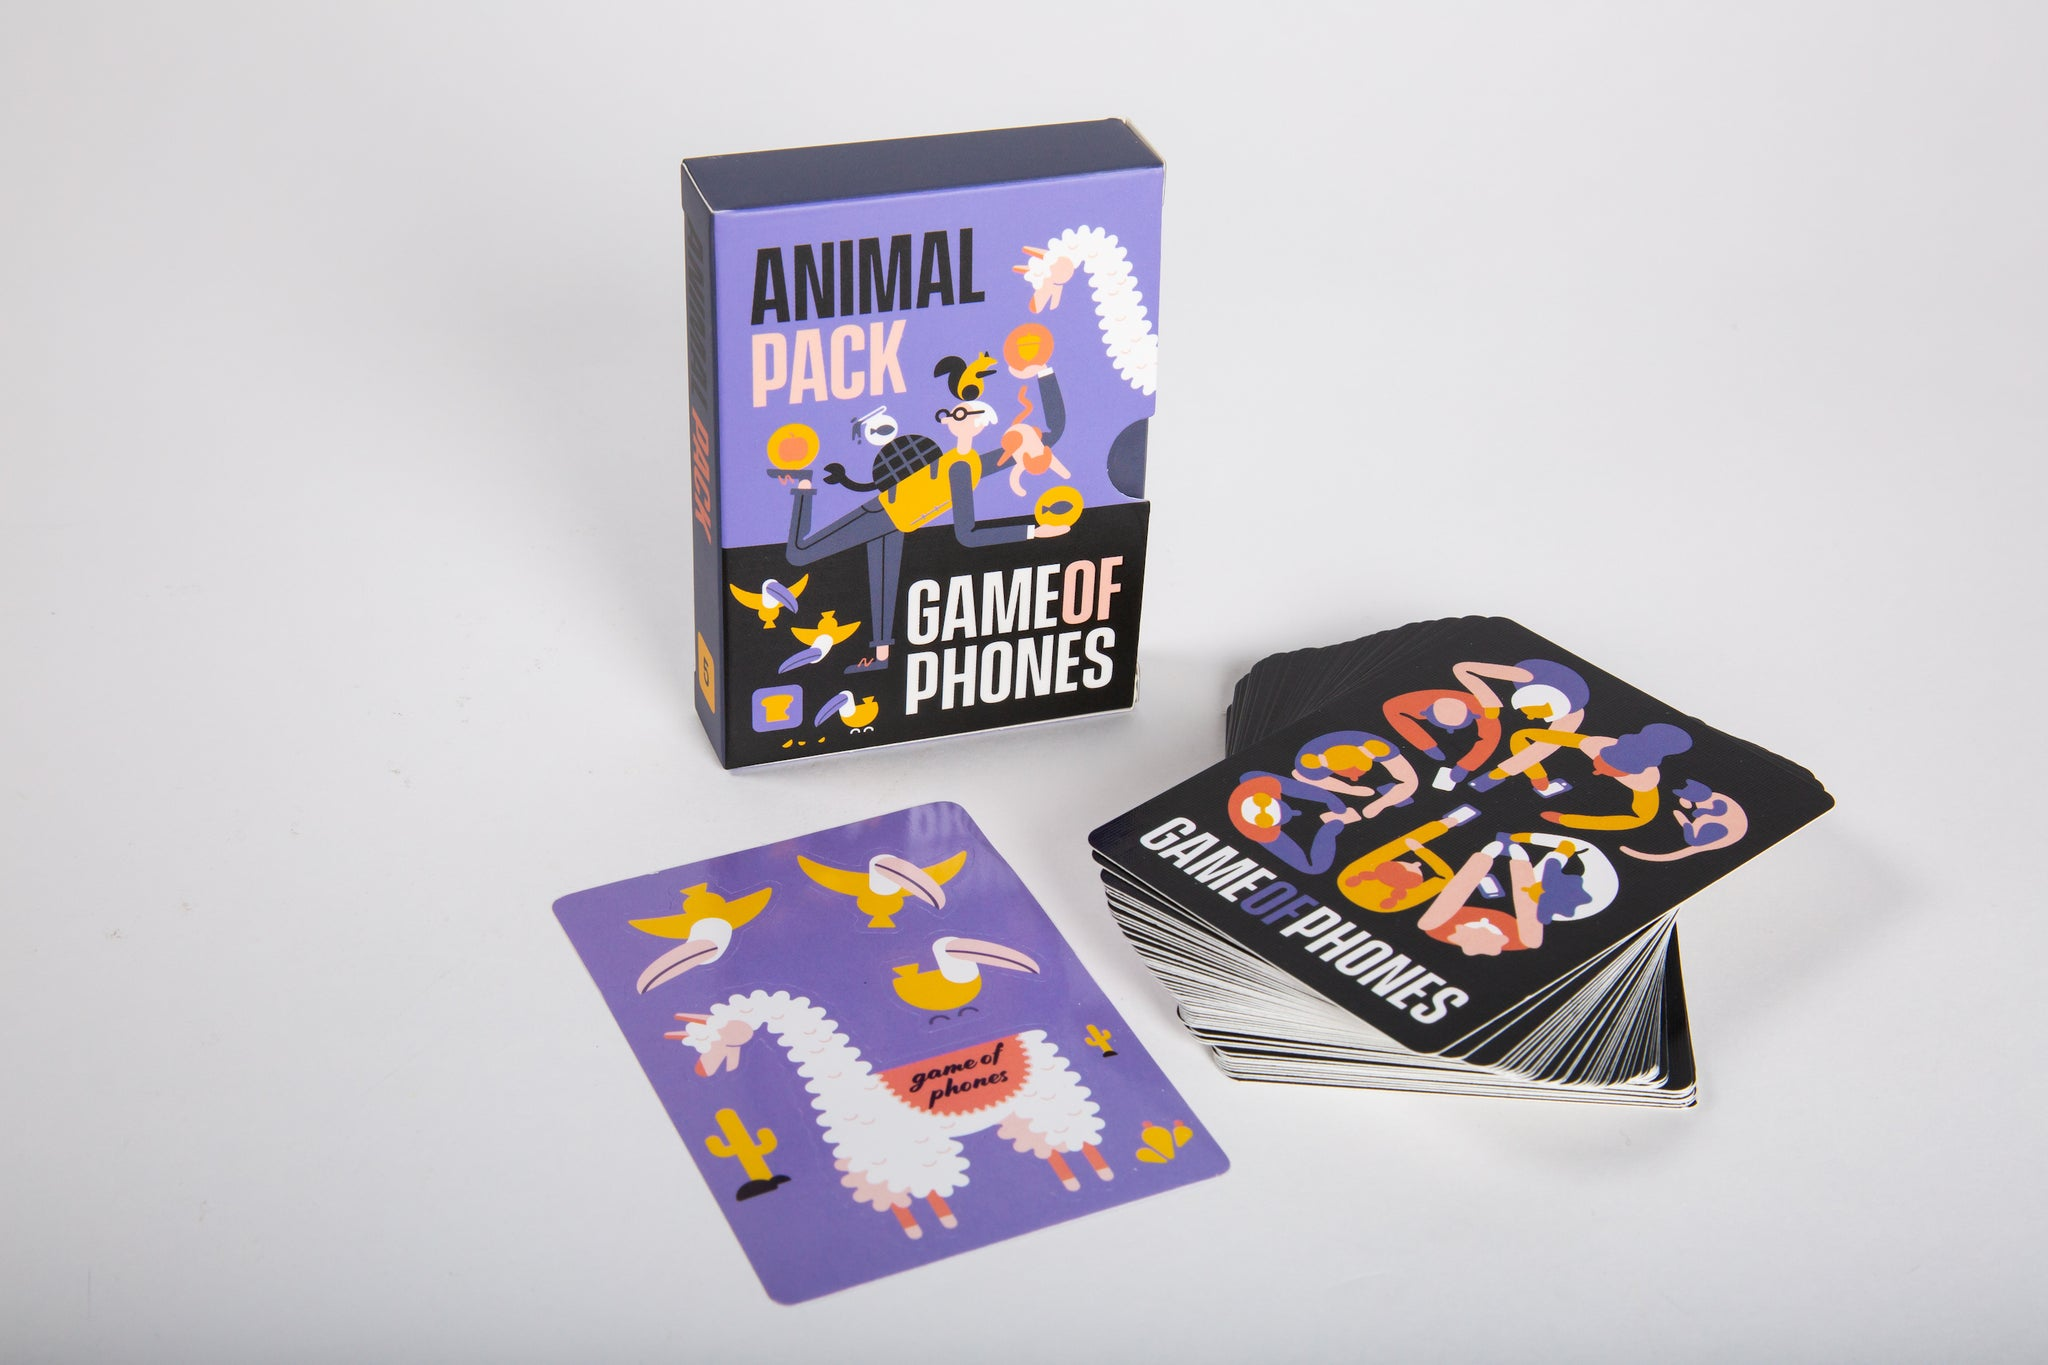 Game of Phones: The Animal Mini Pack